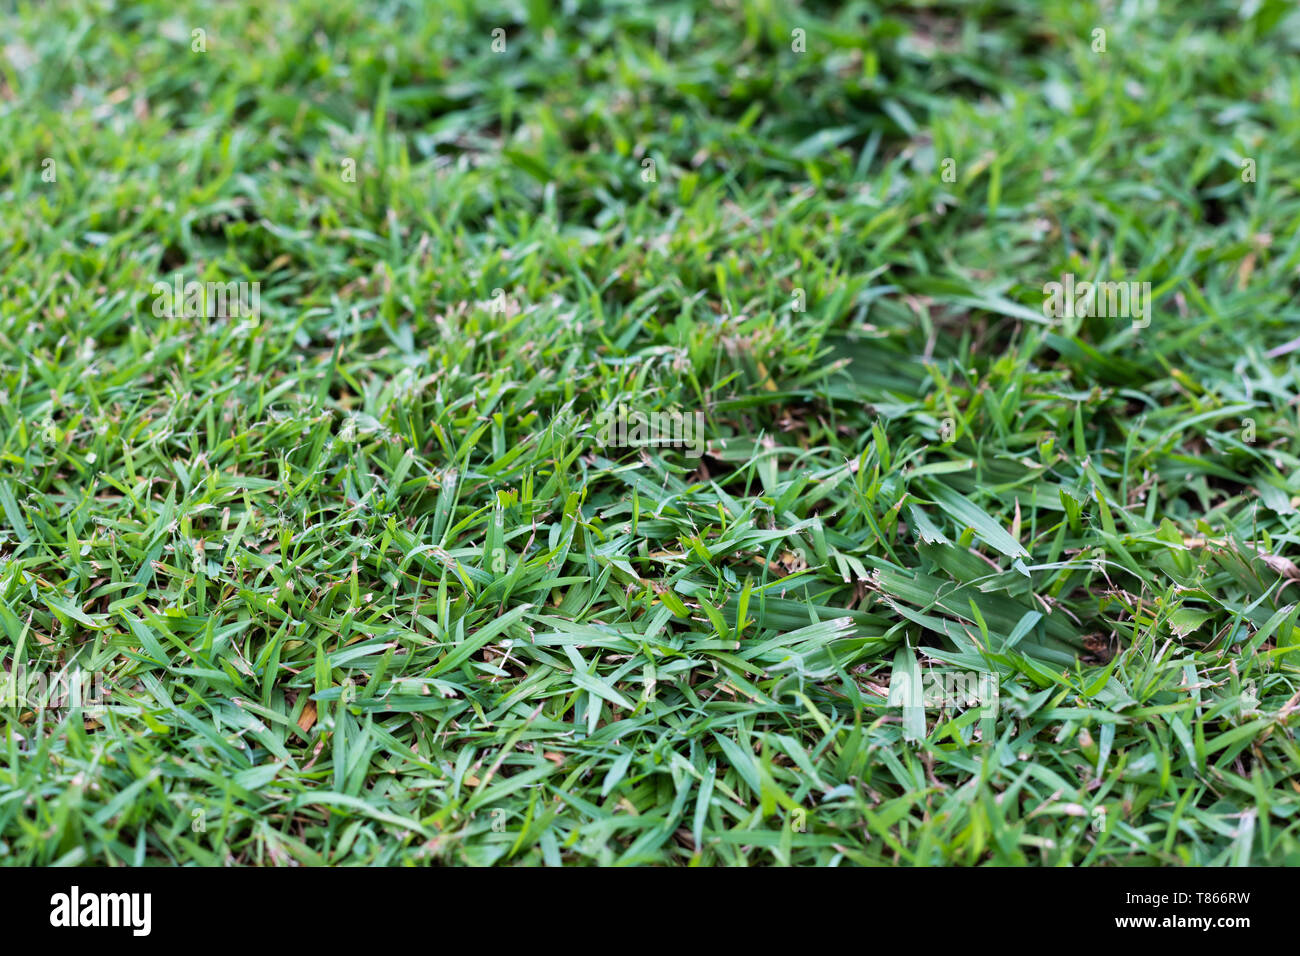 Buffalo Grass Lawn High Resolution Stock Photography And Images Alamy